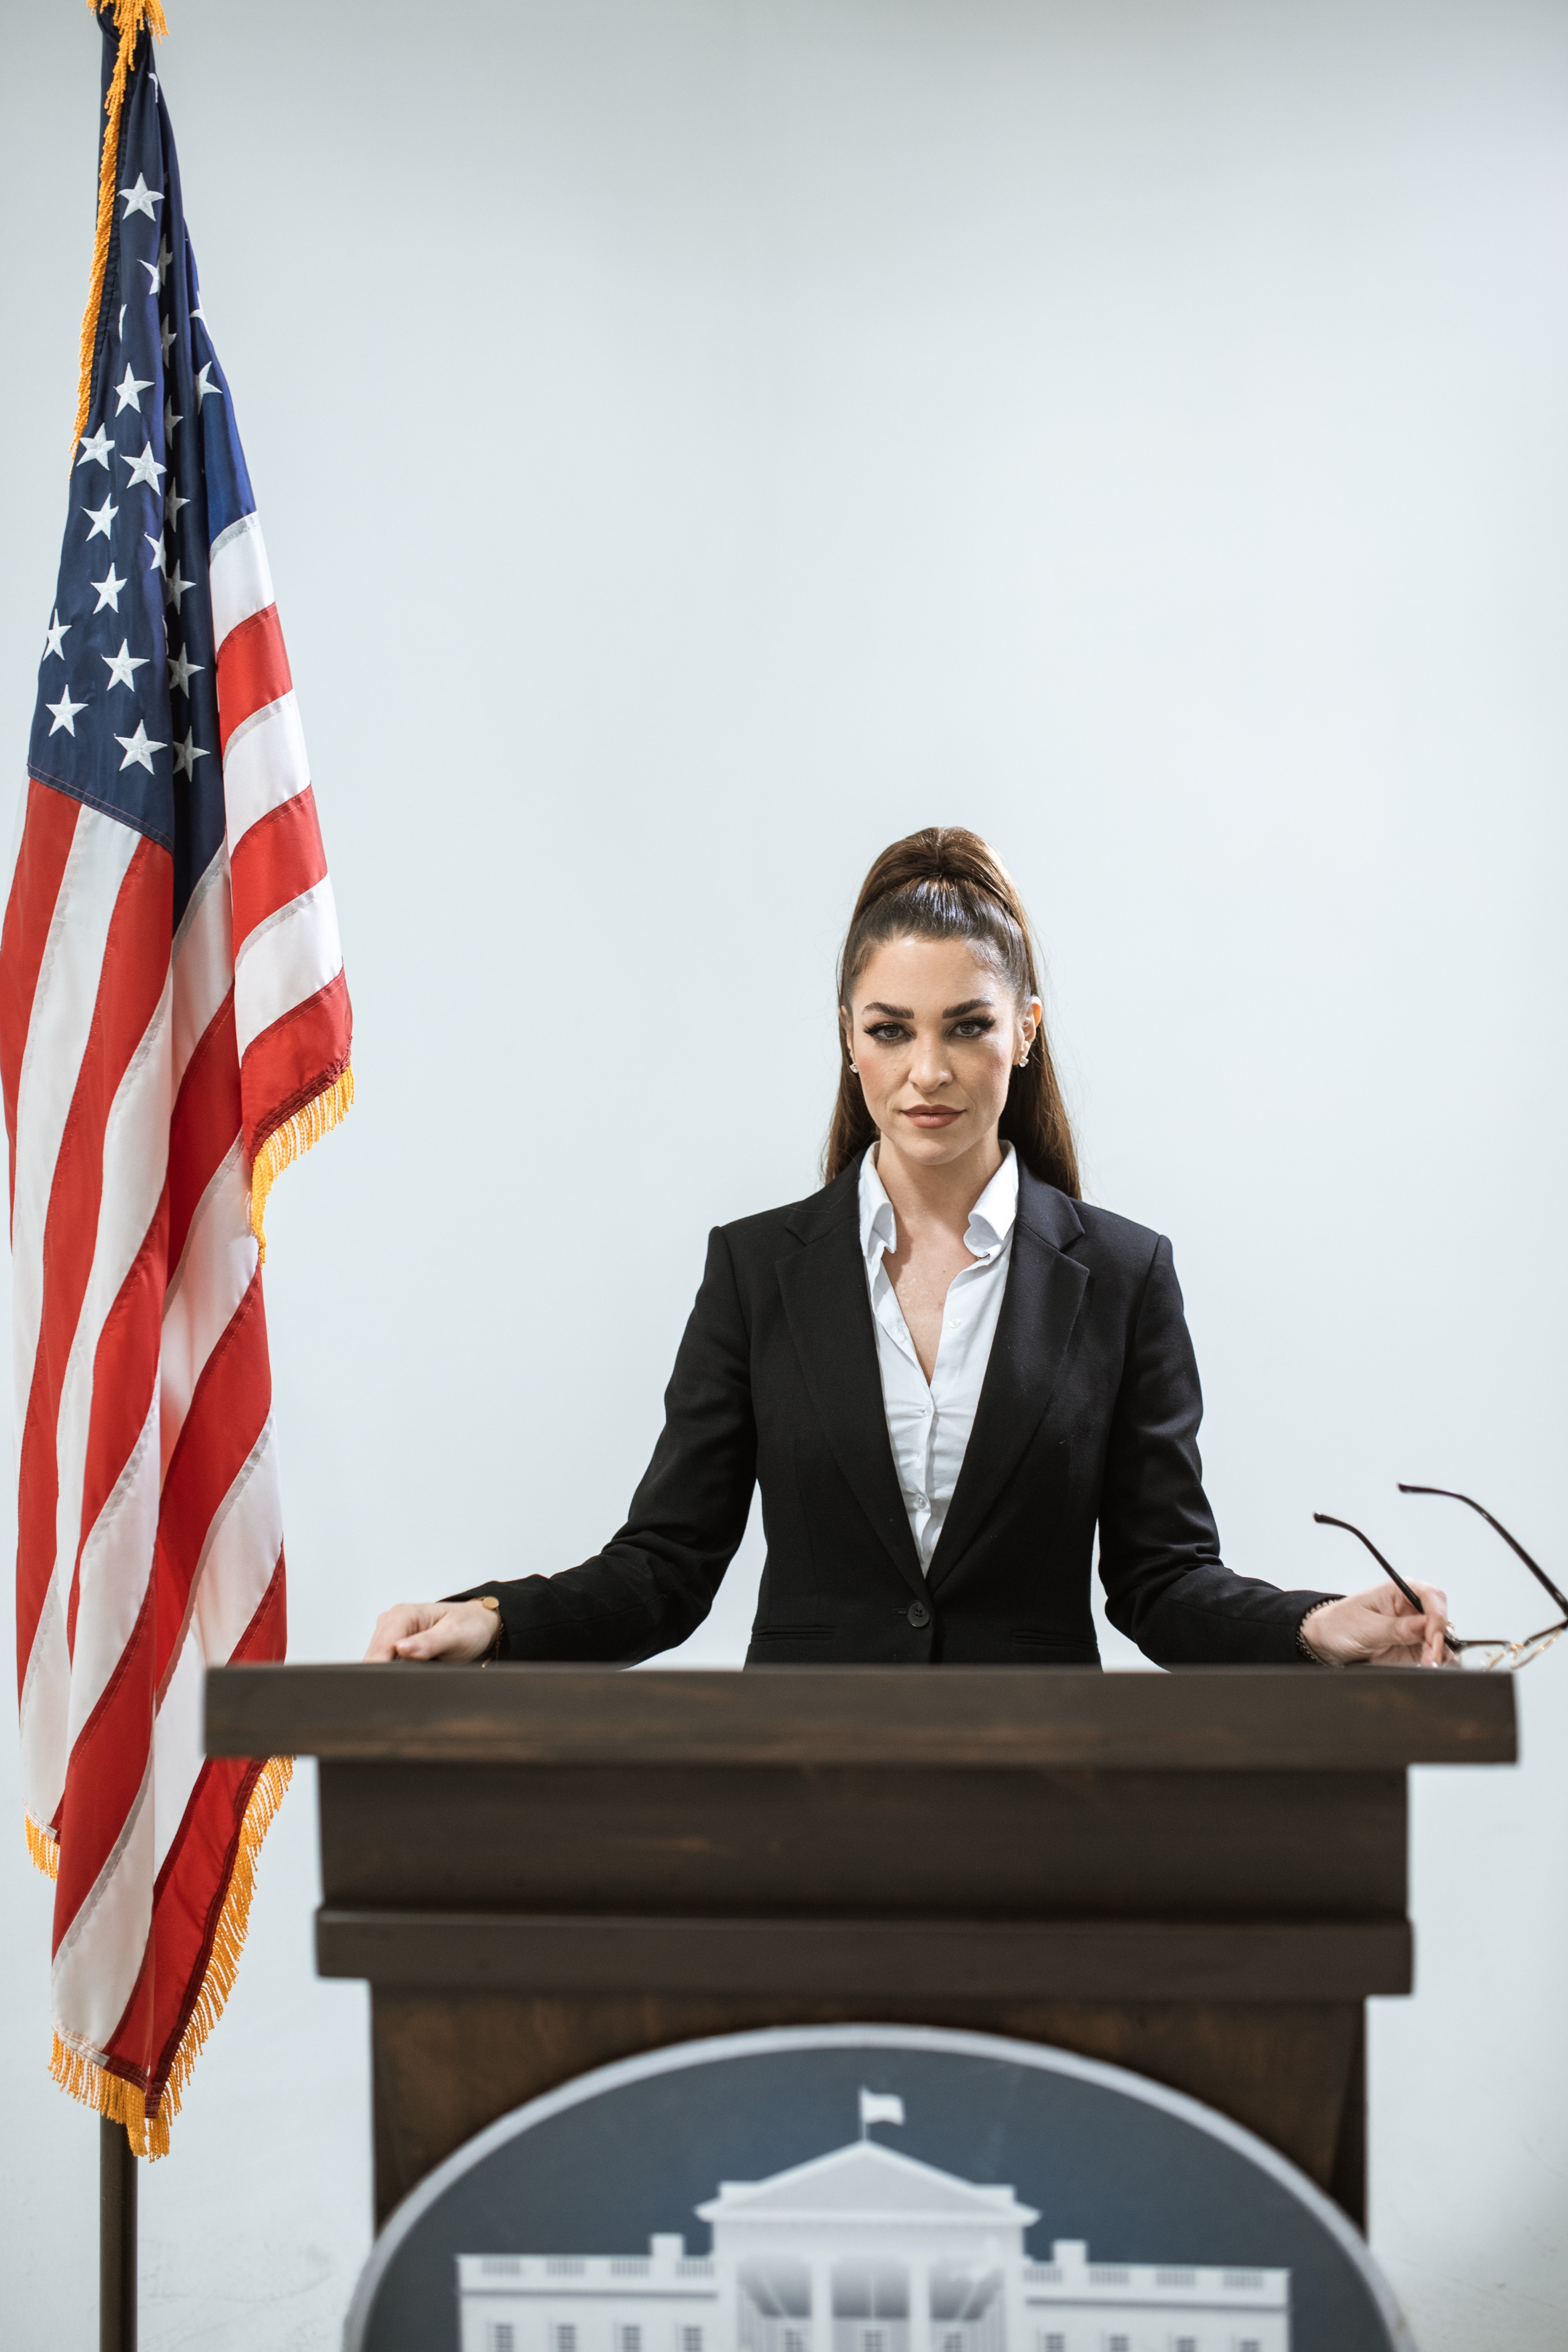 photo of woman standing behind wooden table